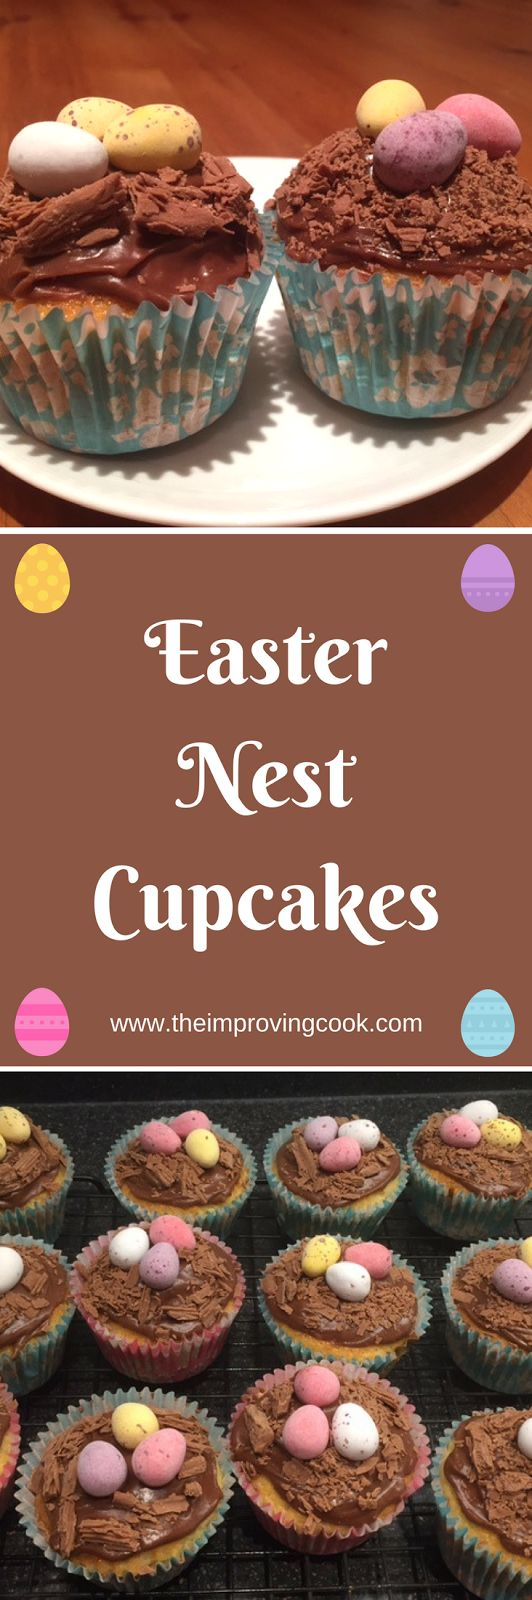 Easter Nest Cupcakes- perfect for baking Easter treats with the kids. Use Cadbury's Flake and Cadbury's mini eggs to decorate.